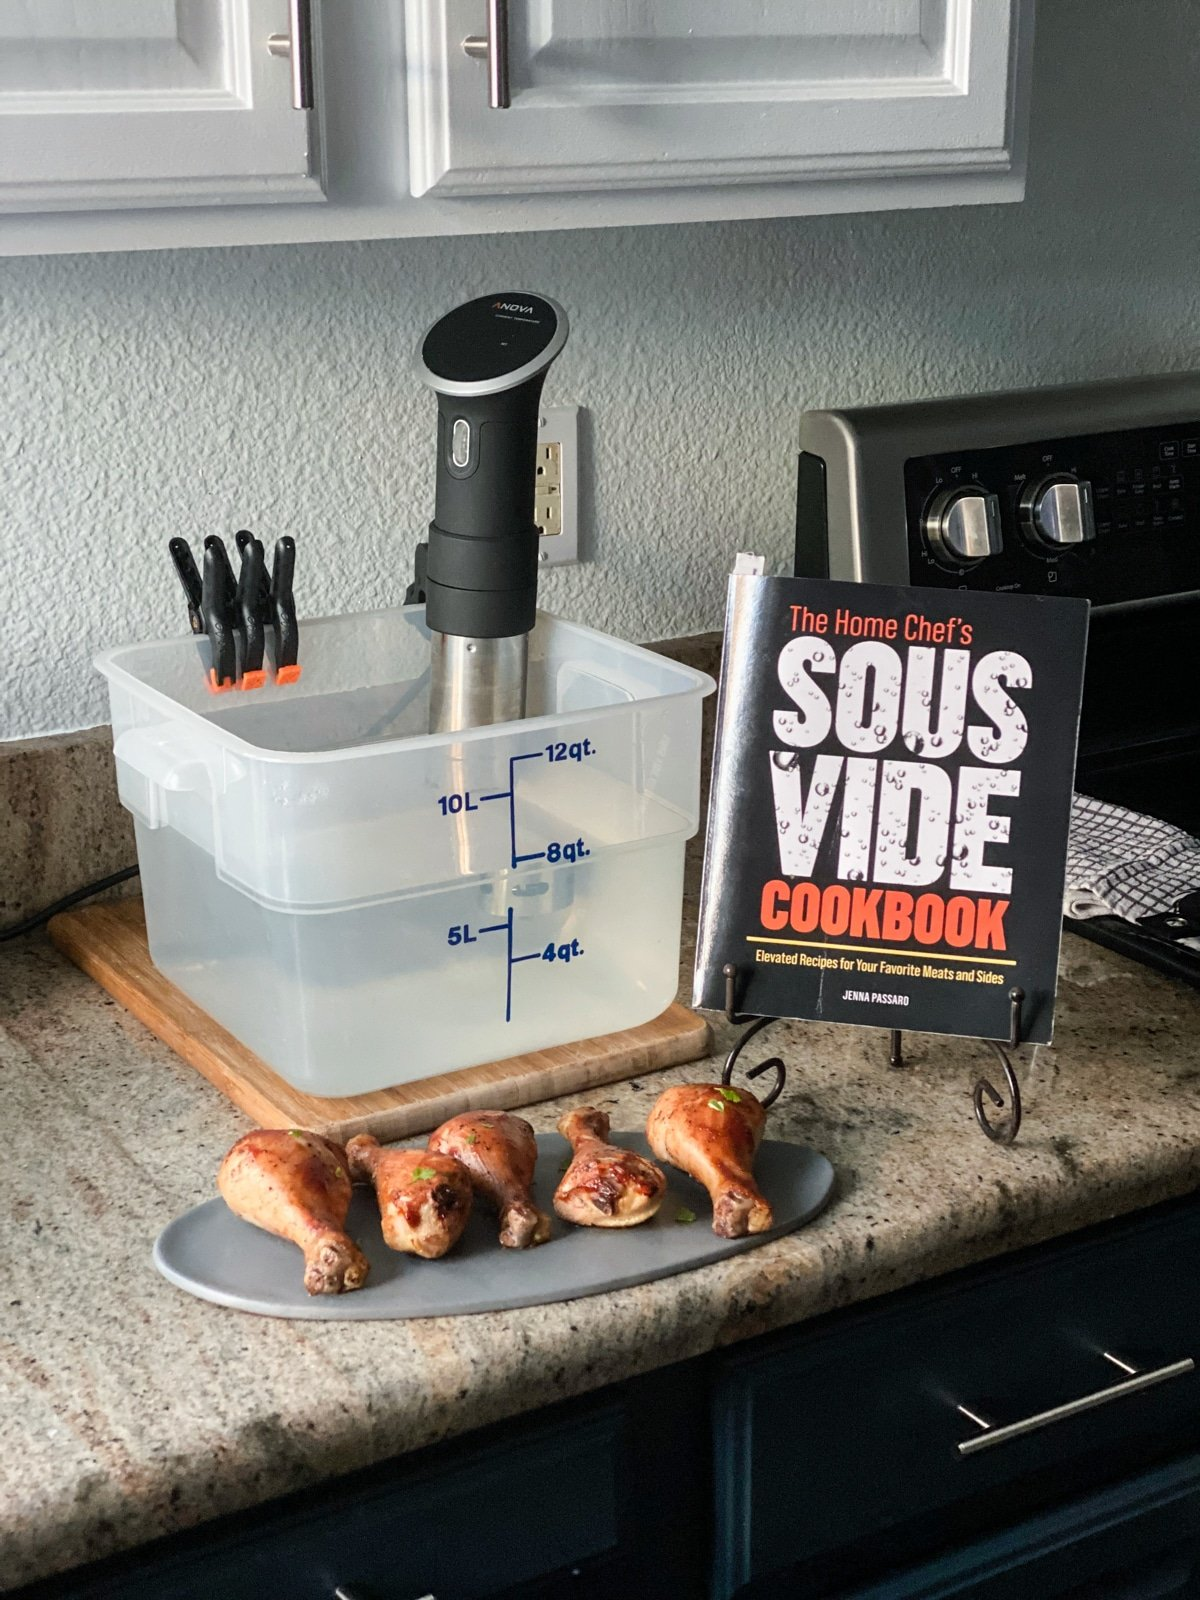 sous vide for beginners setup with Anova sous vide machine and The Home Chef's Sous Vide Cookbook